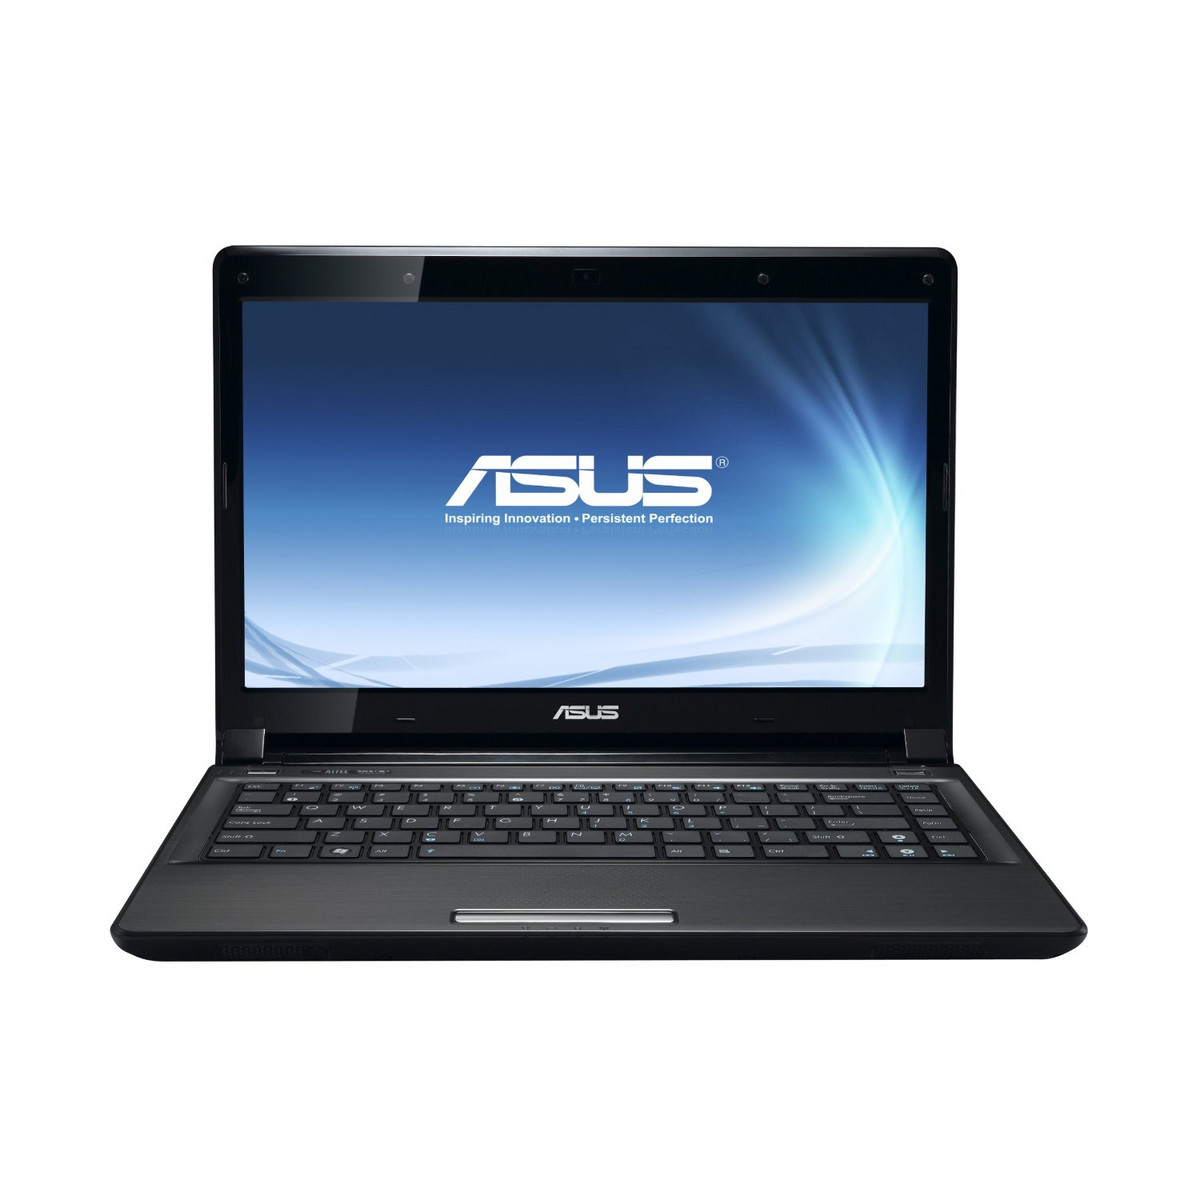 ASUS UL80VT NOTEBOOK CAMERA DRIVERS WINDOWS